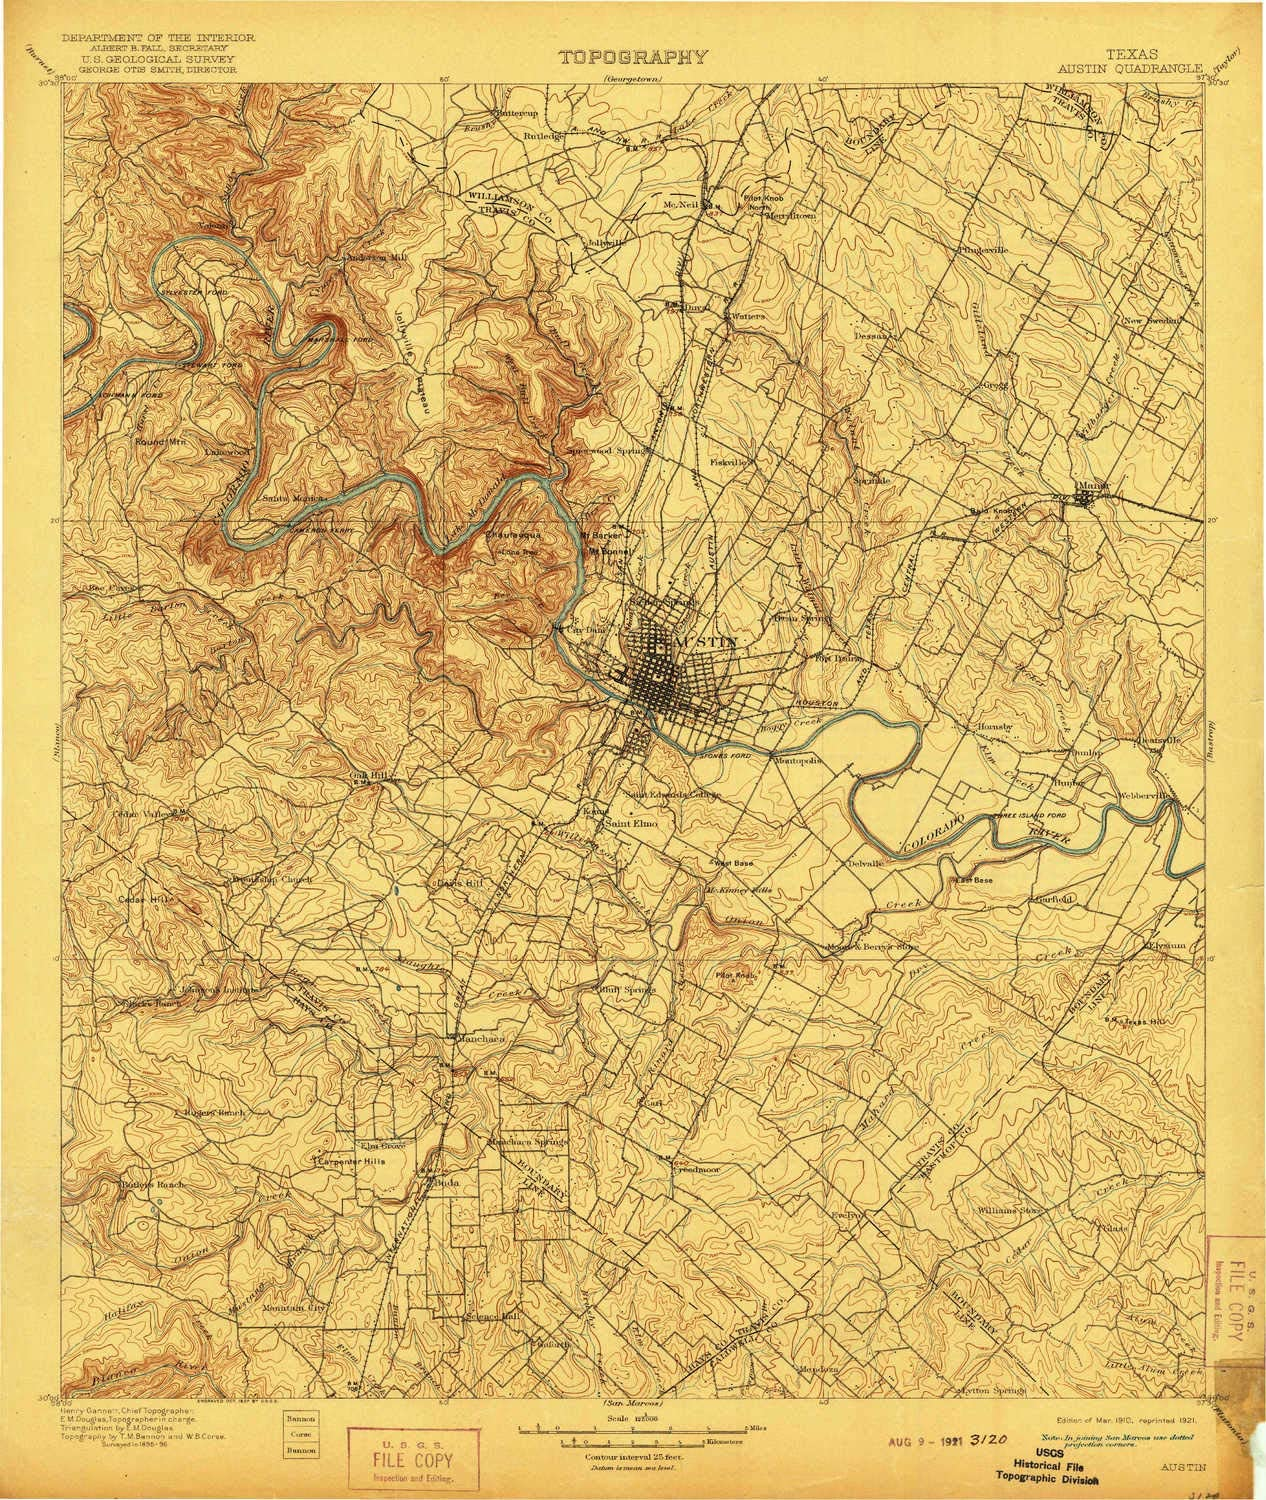 amazon com yellowmaps austin tx topo map 1 125000 scale 30 x 30 minute historical 1910 updated 1921 19 9 x 16 8 in paper sports outdoors yellowmaps austin tx topo map 1 125000 scale 30 x 30 minute historical 1910 updated 1921 19 9 x 16 8 in